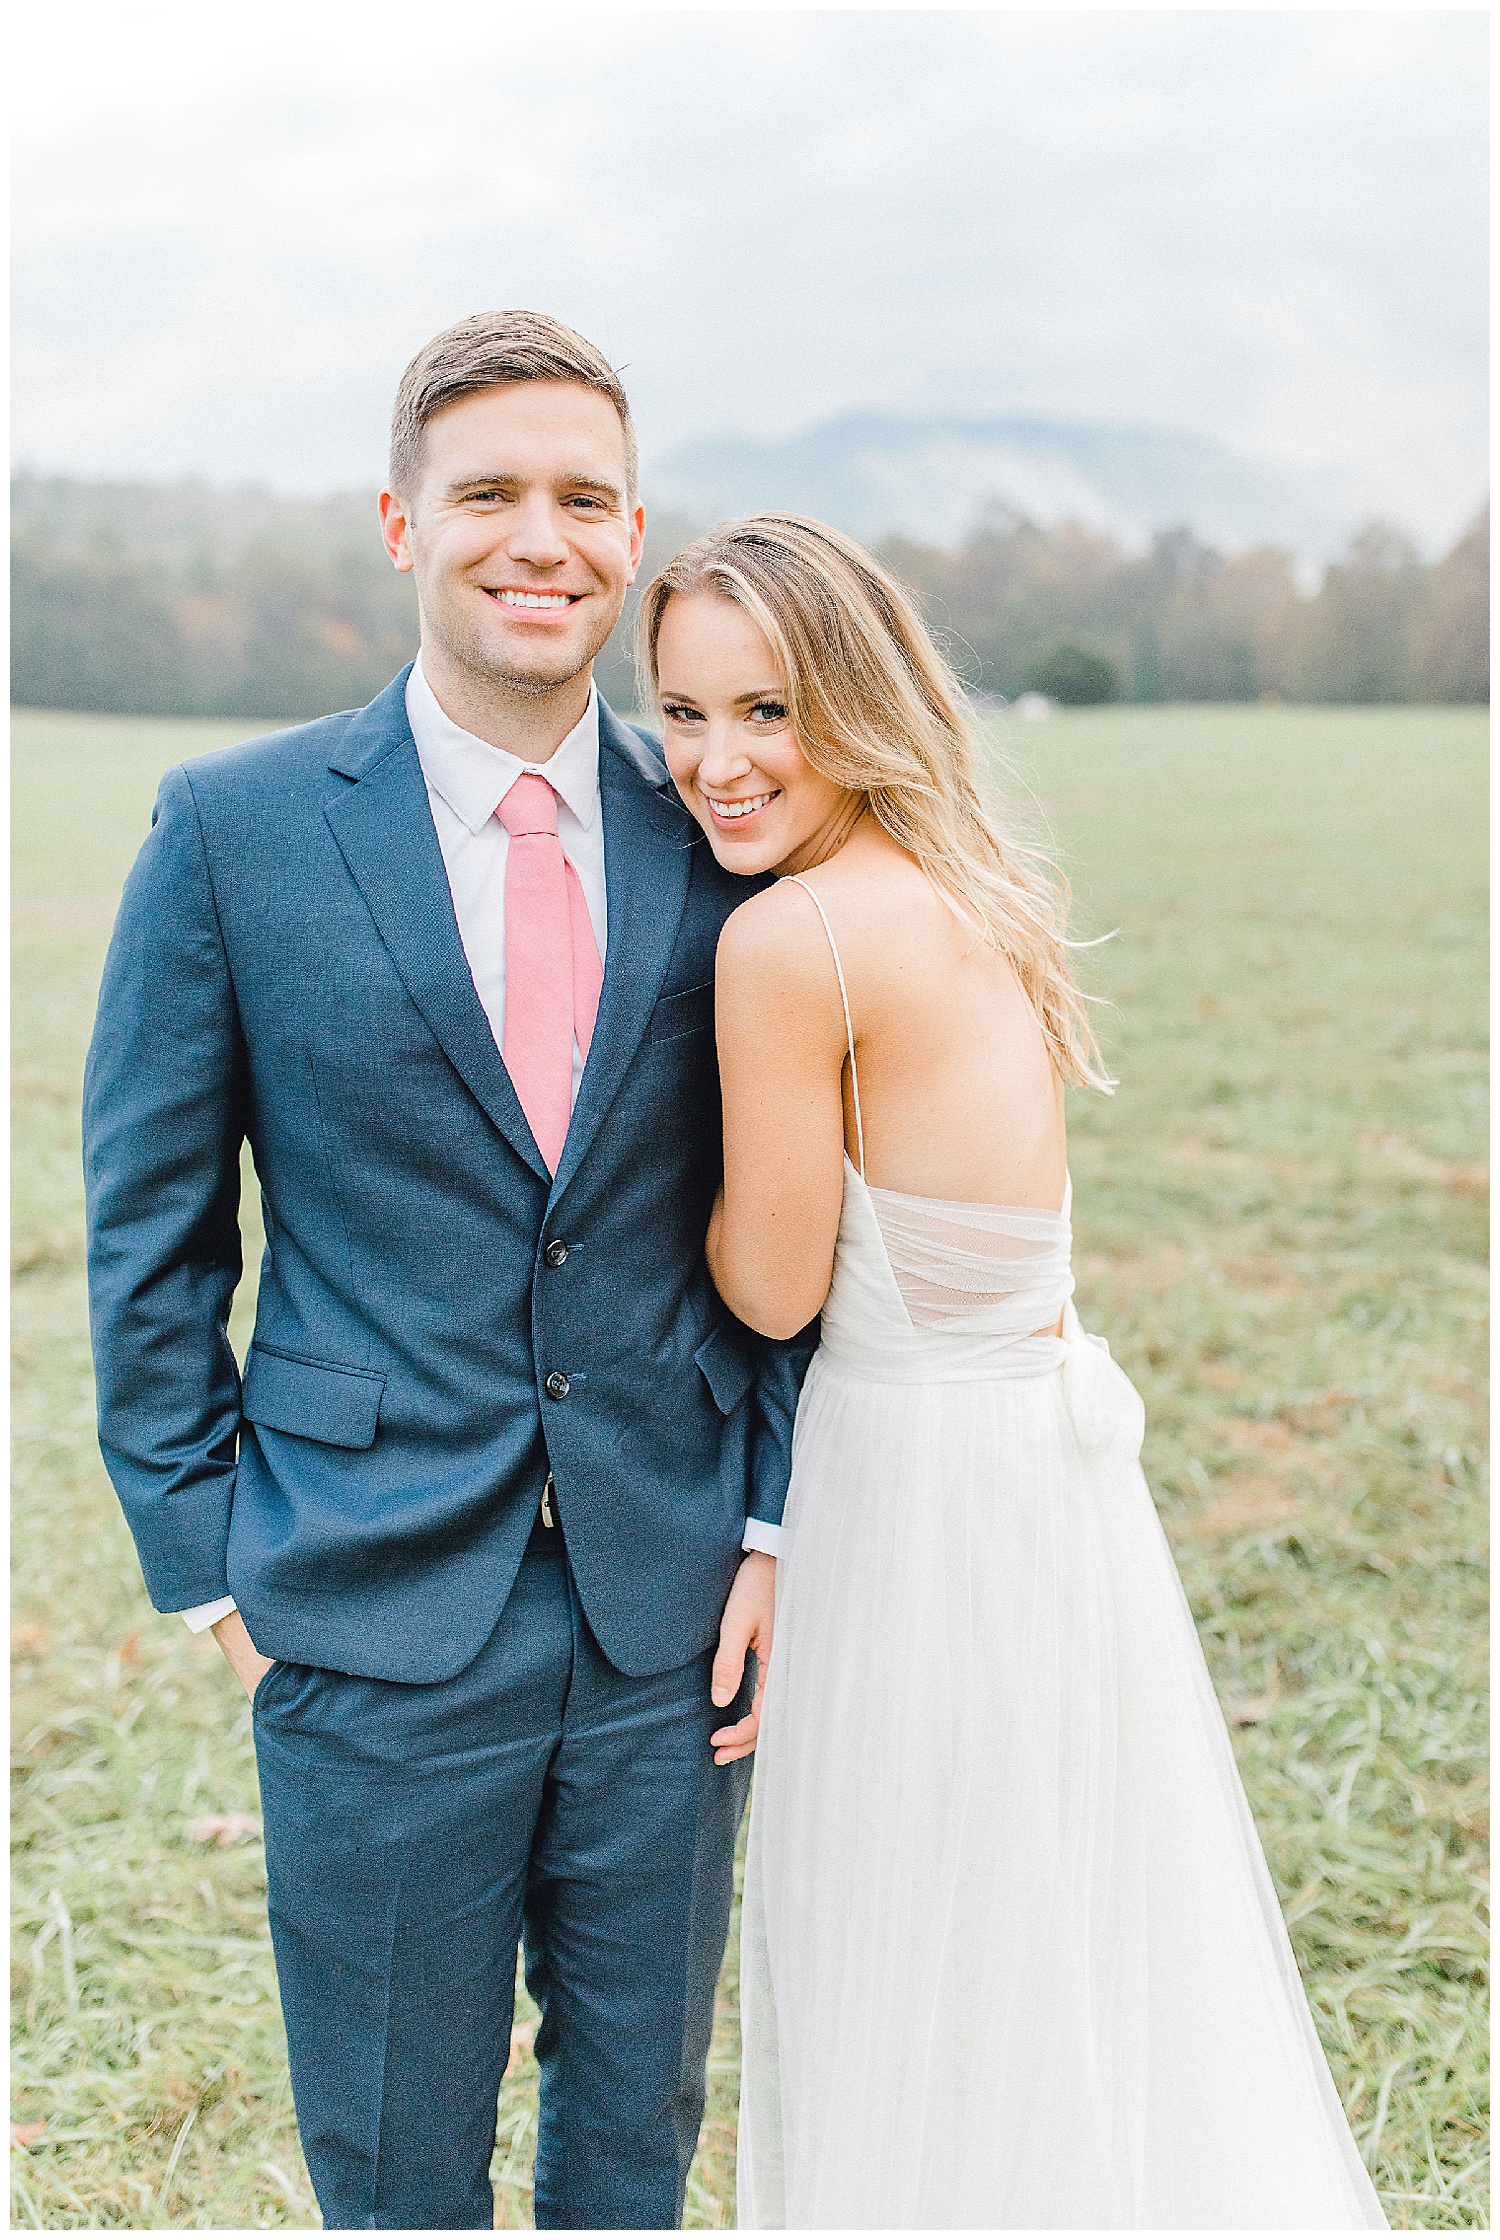 Emma Rose Company recently got to travel all the way to Nashville to photograph the most beautiful post-wedding bride and groom portraits in the Great Smoky Mountains with a gorgeous couple! Nashville wedding inspiration at it's finest._0026.jpg